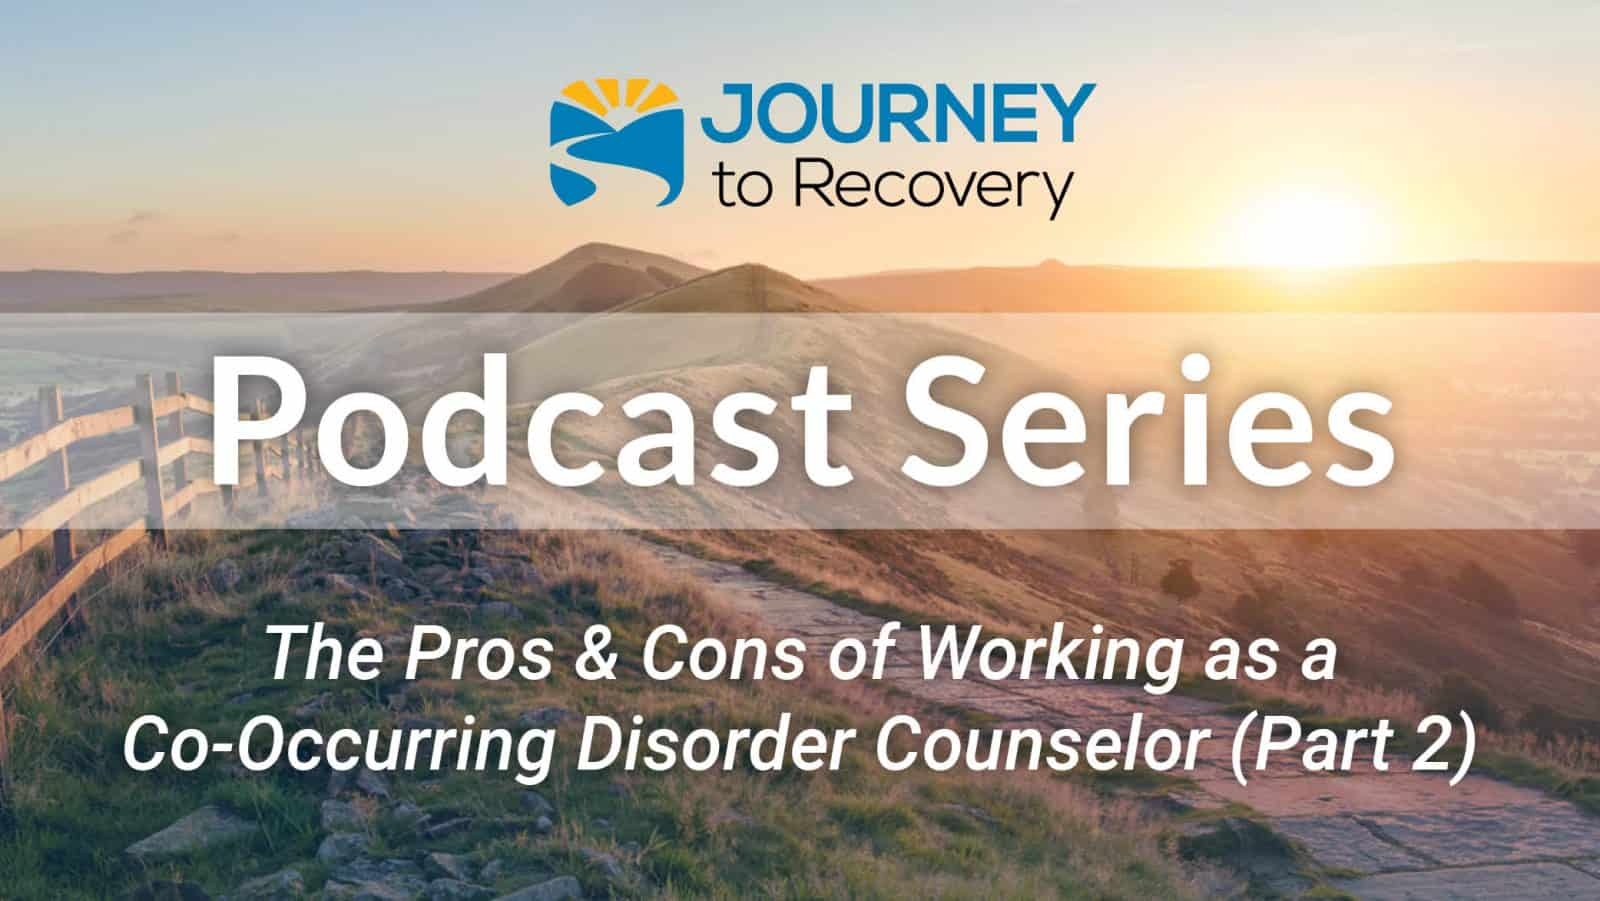 The Pros and Cons of Working as a Co-Occurring Disorder Counselor (Part 2)